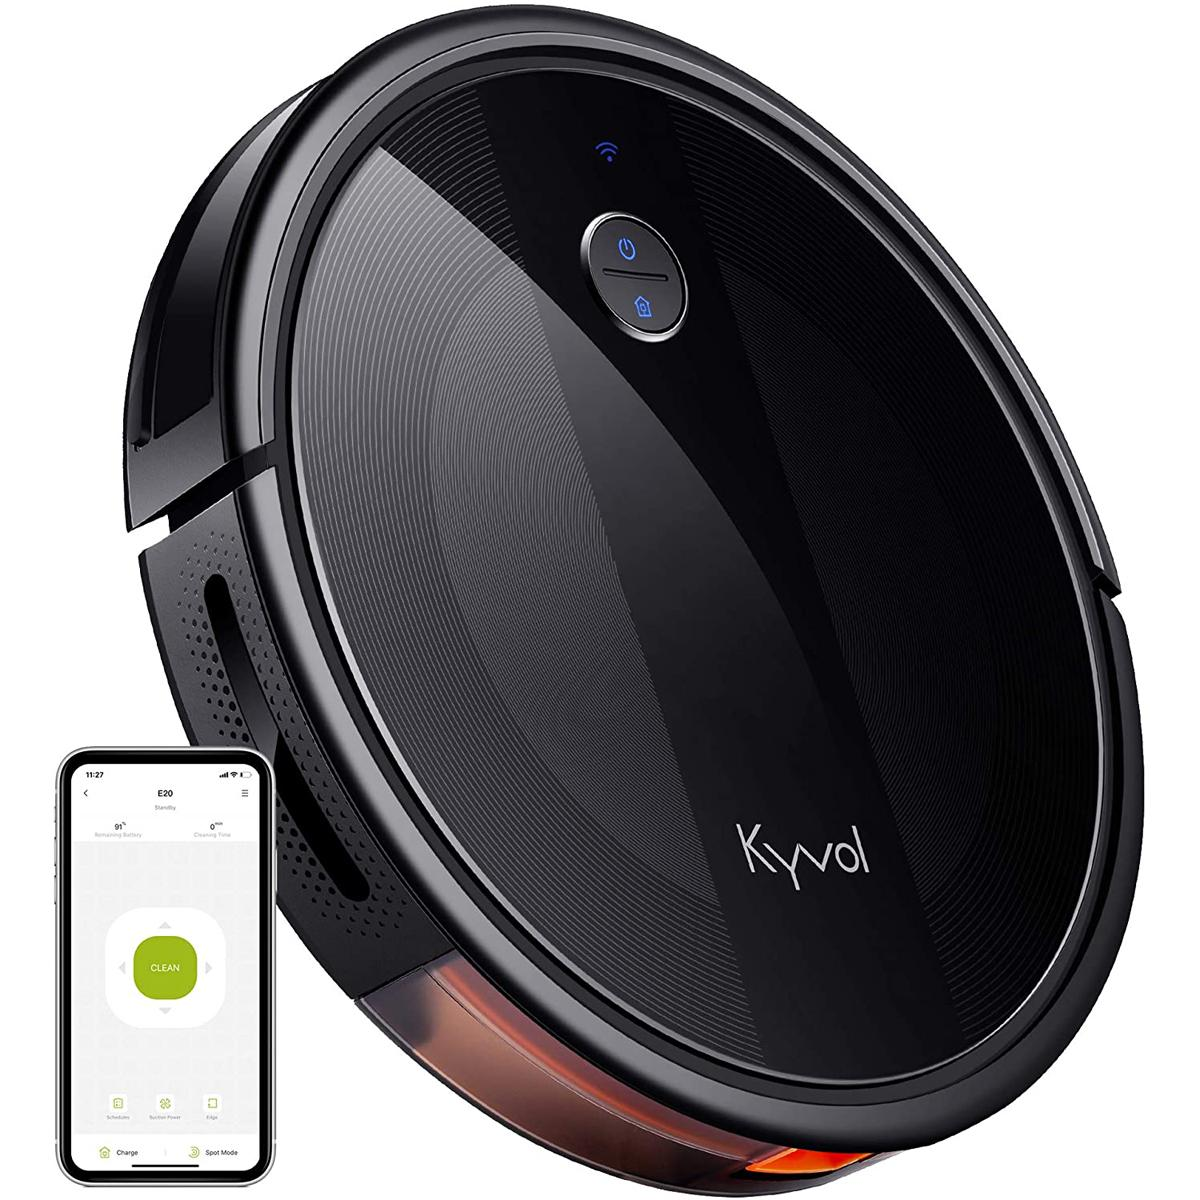 Kyvol Cybovac E20 Robot Vacuum Cleaner for $115 Shipped